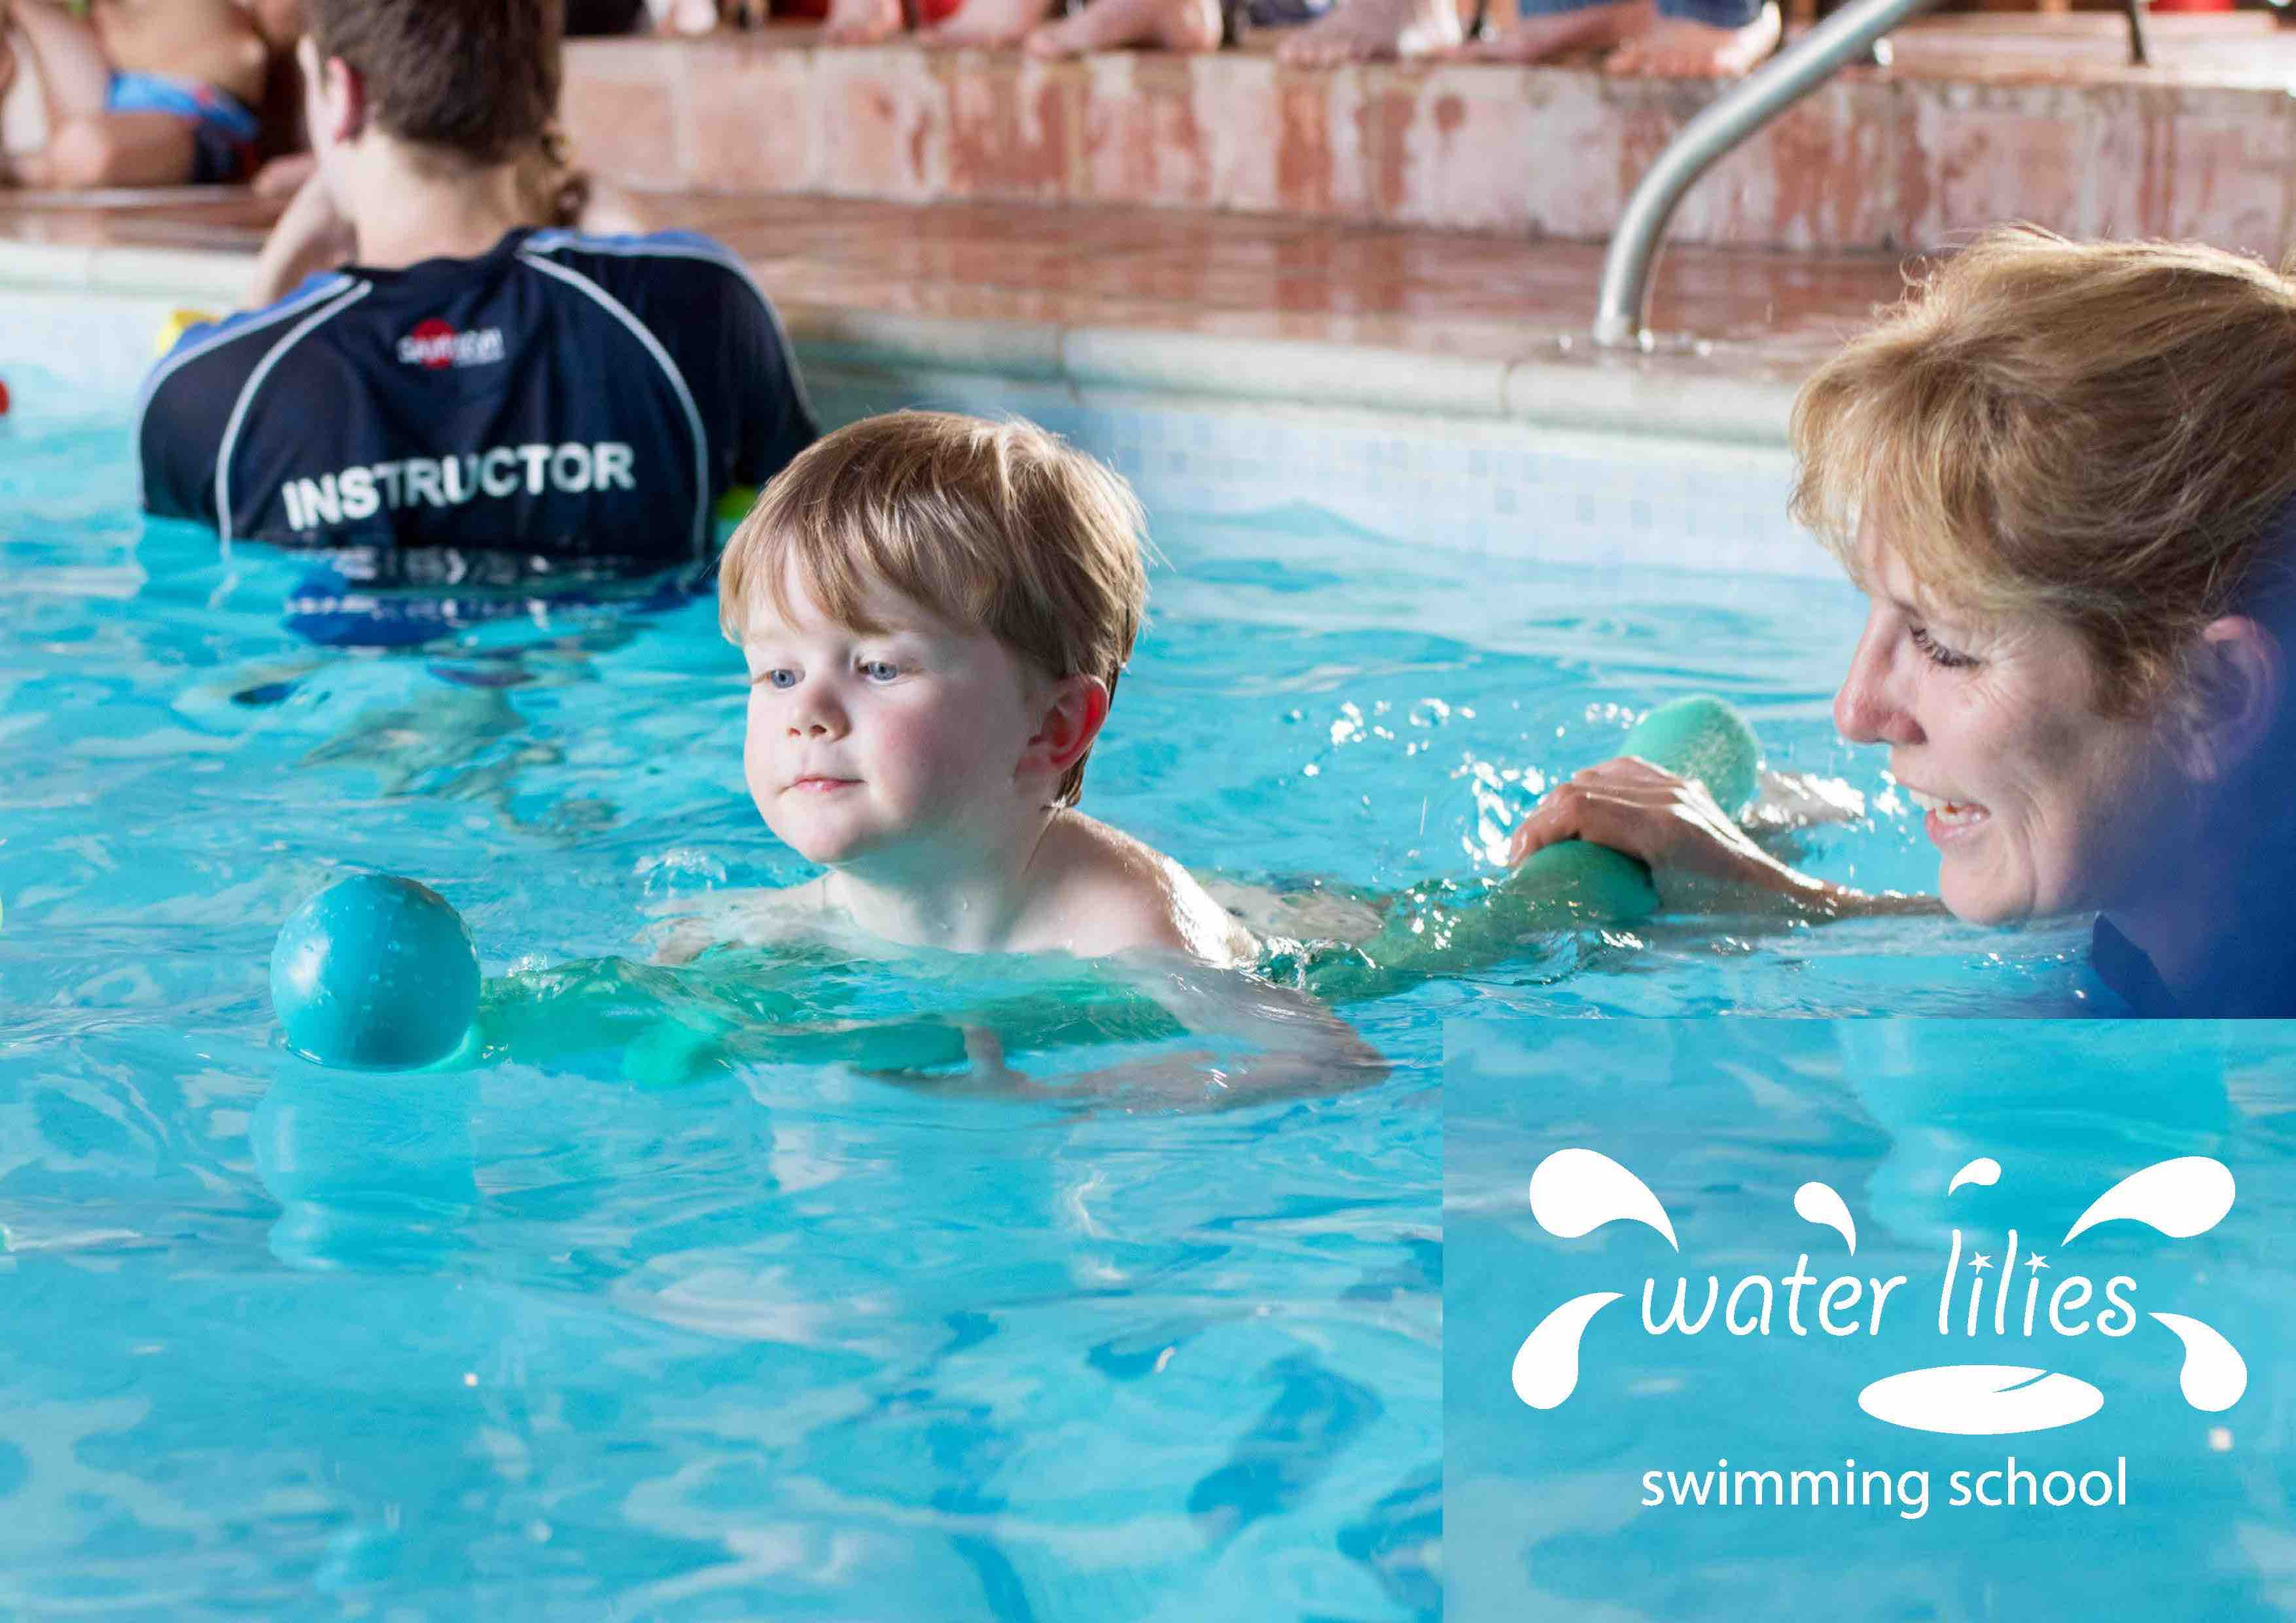 Water Lilies Swimming School Ltd's main image